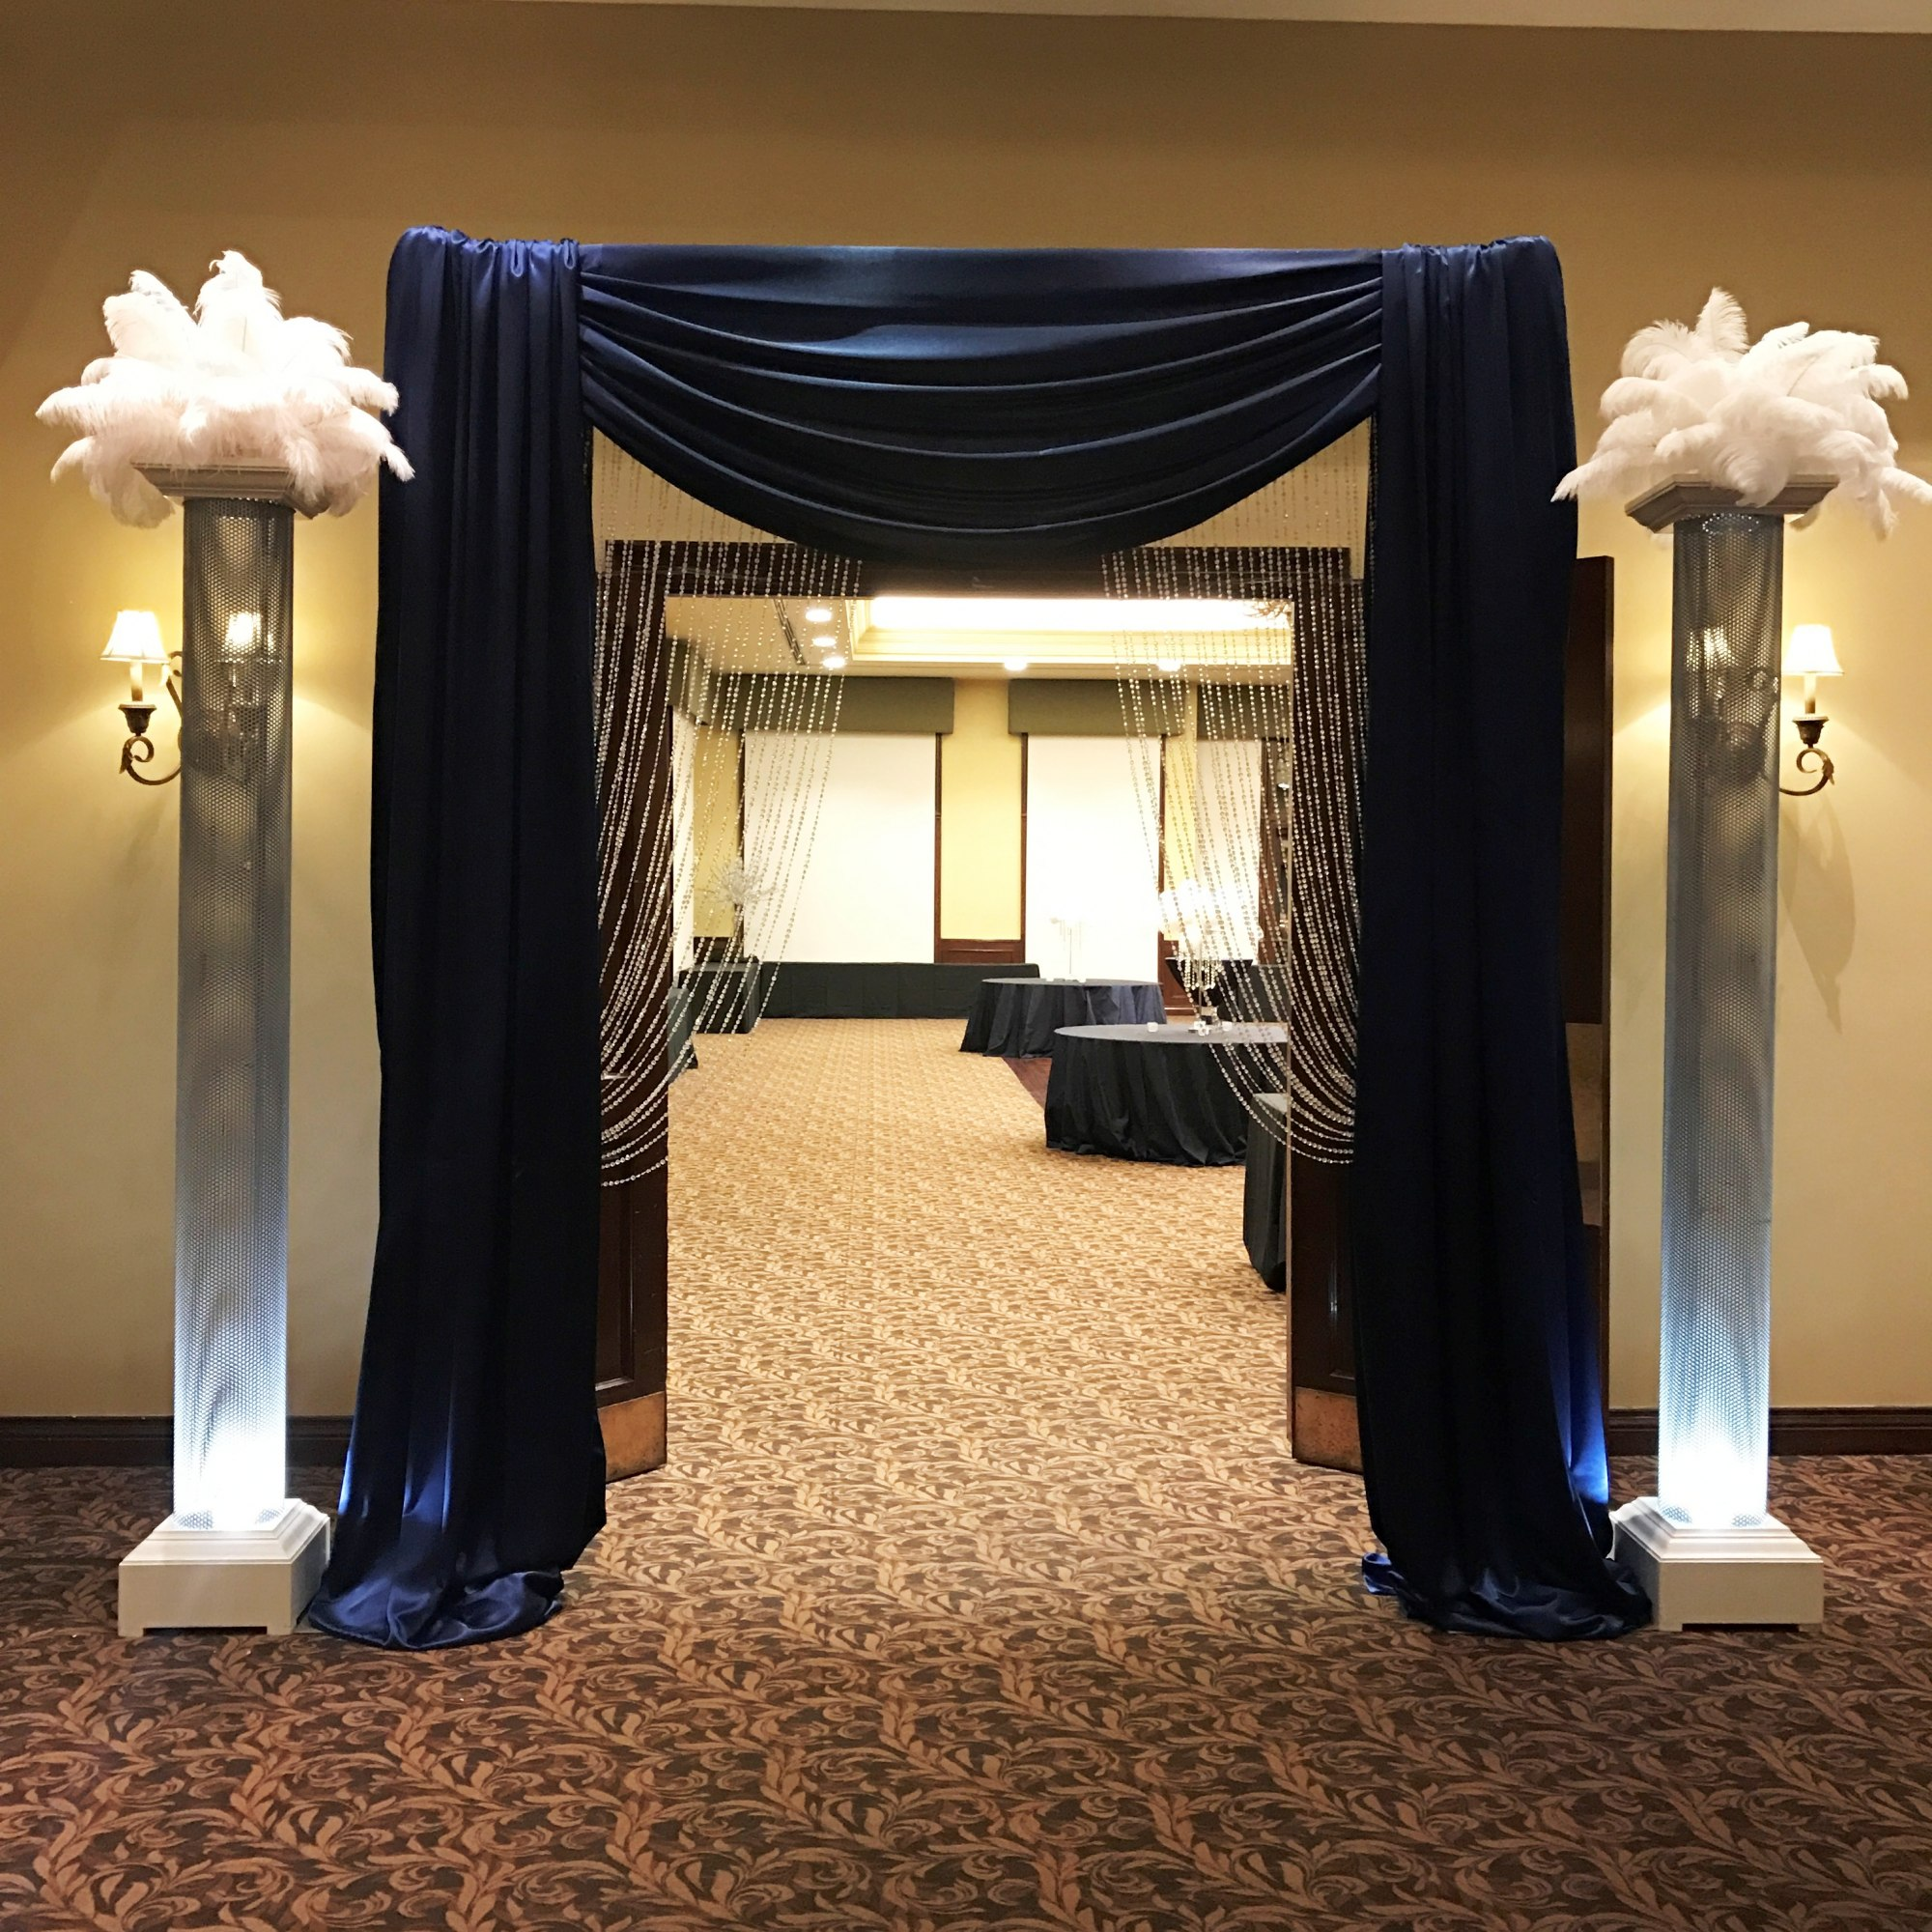 Navy Entranceway with Uplit Silver Columns & White Feathers